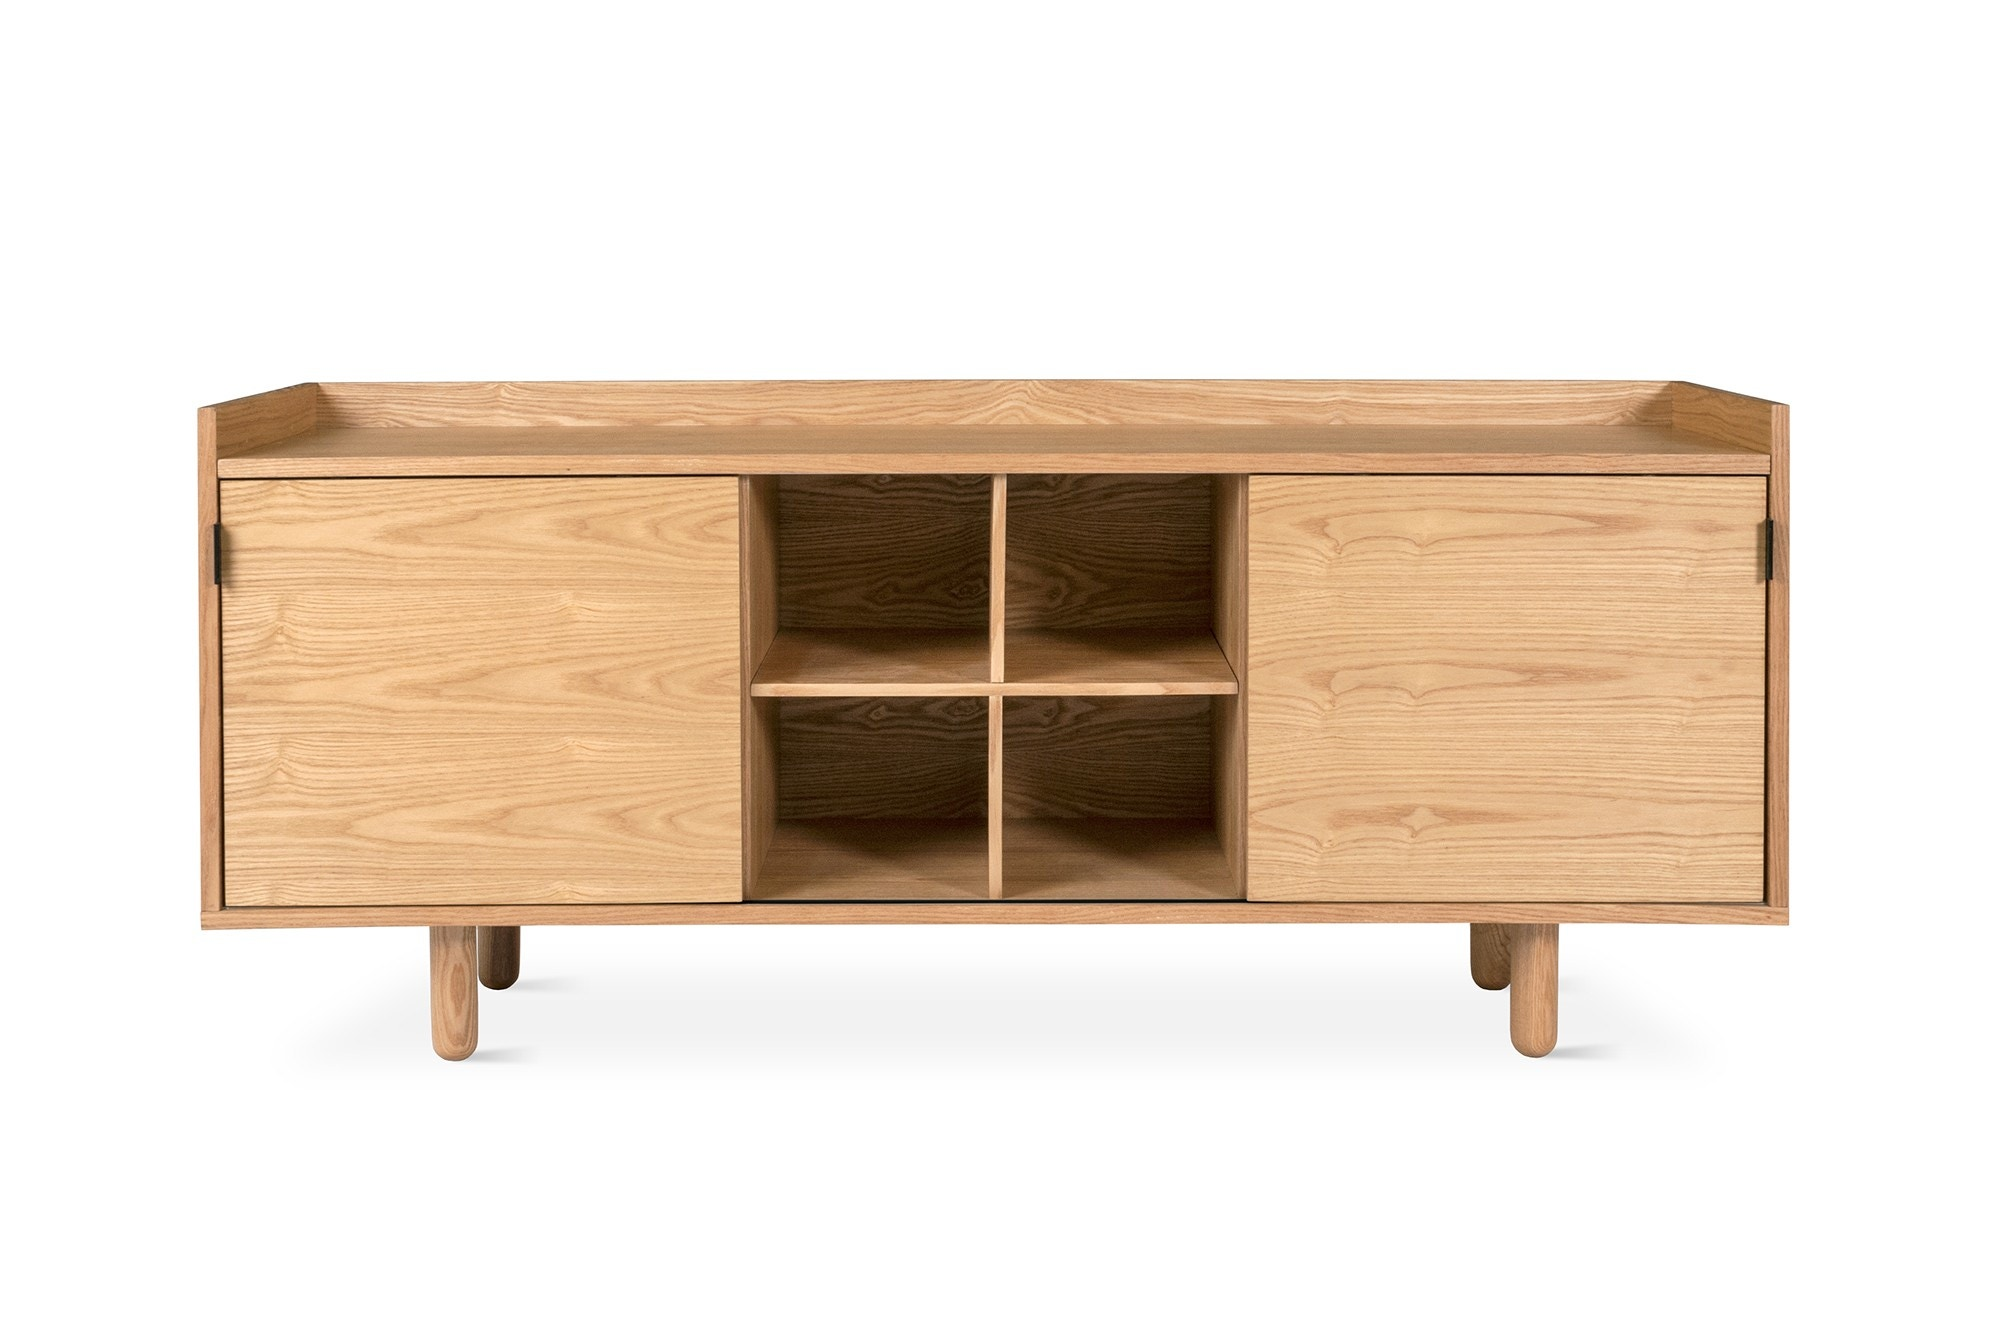 CLEARANCE - Gus* Modern Mimico Cabinet, Ash